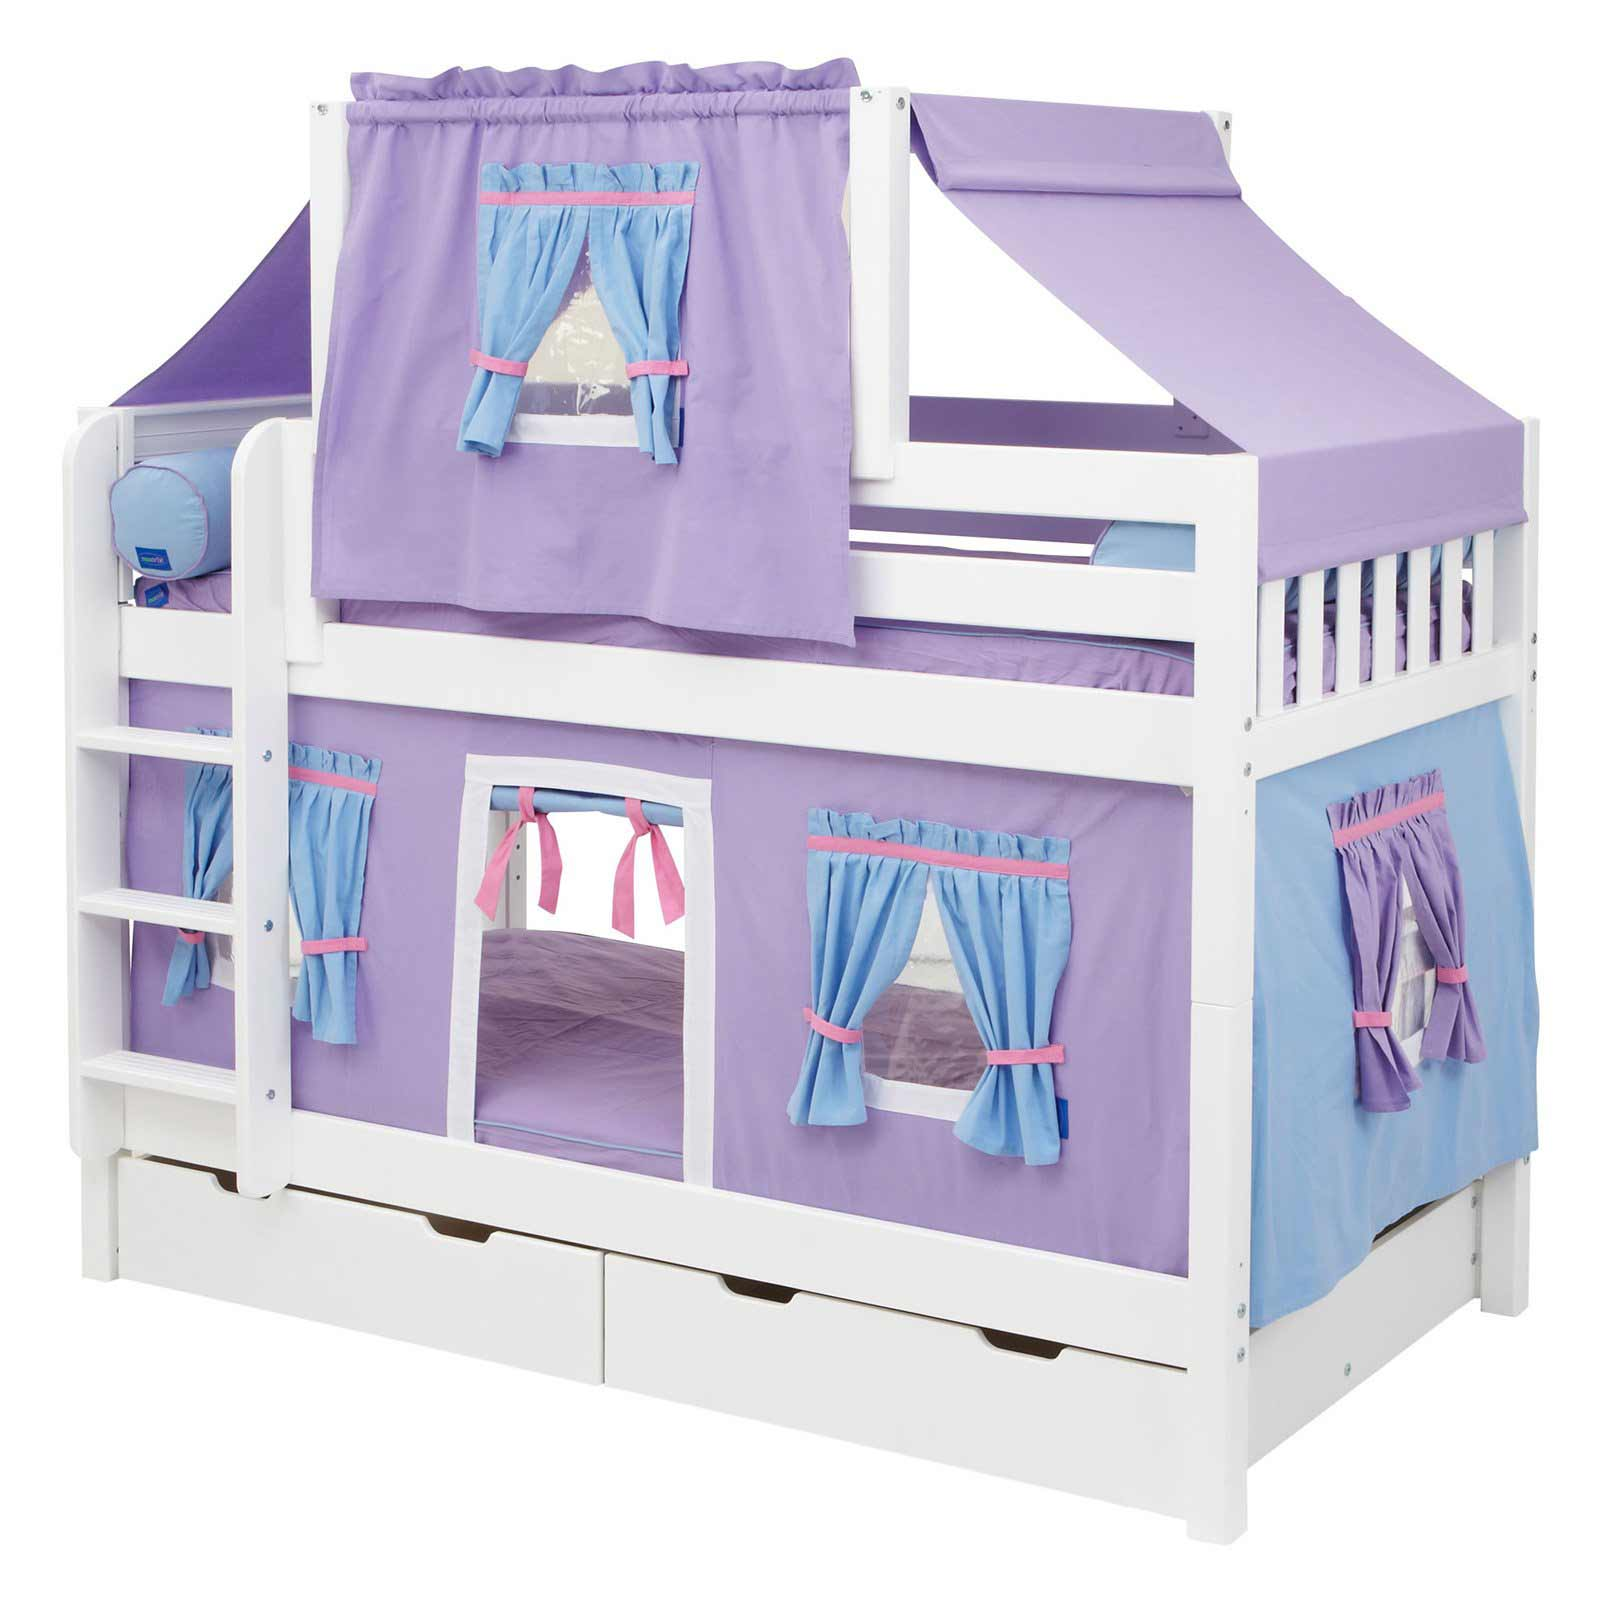 Hot Shot Purple Girl Bunk Bed with Twin Deluxe Tent